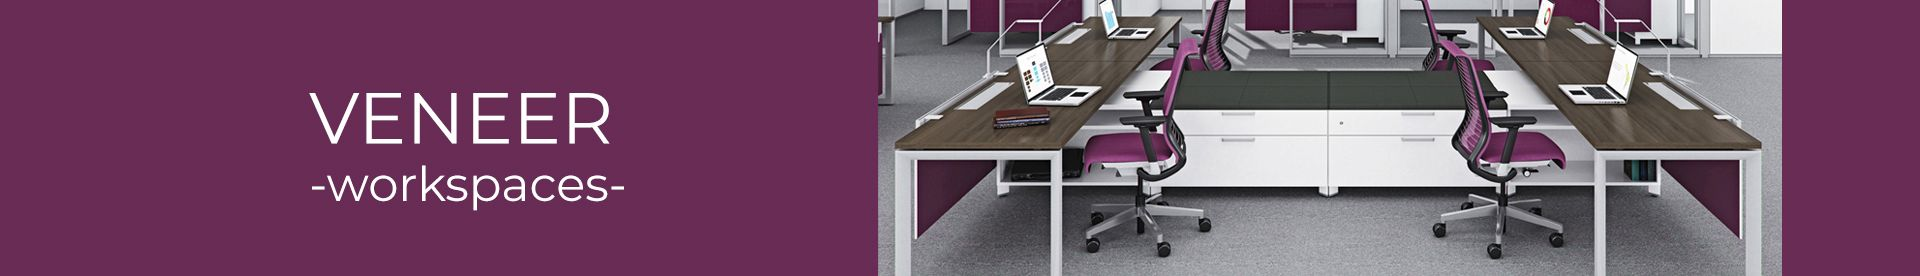 veneer-workspaces-banner.jpg